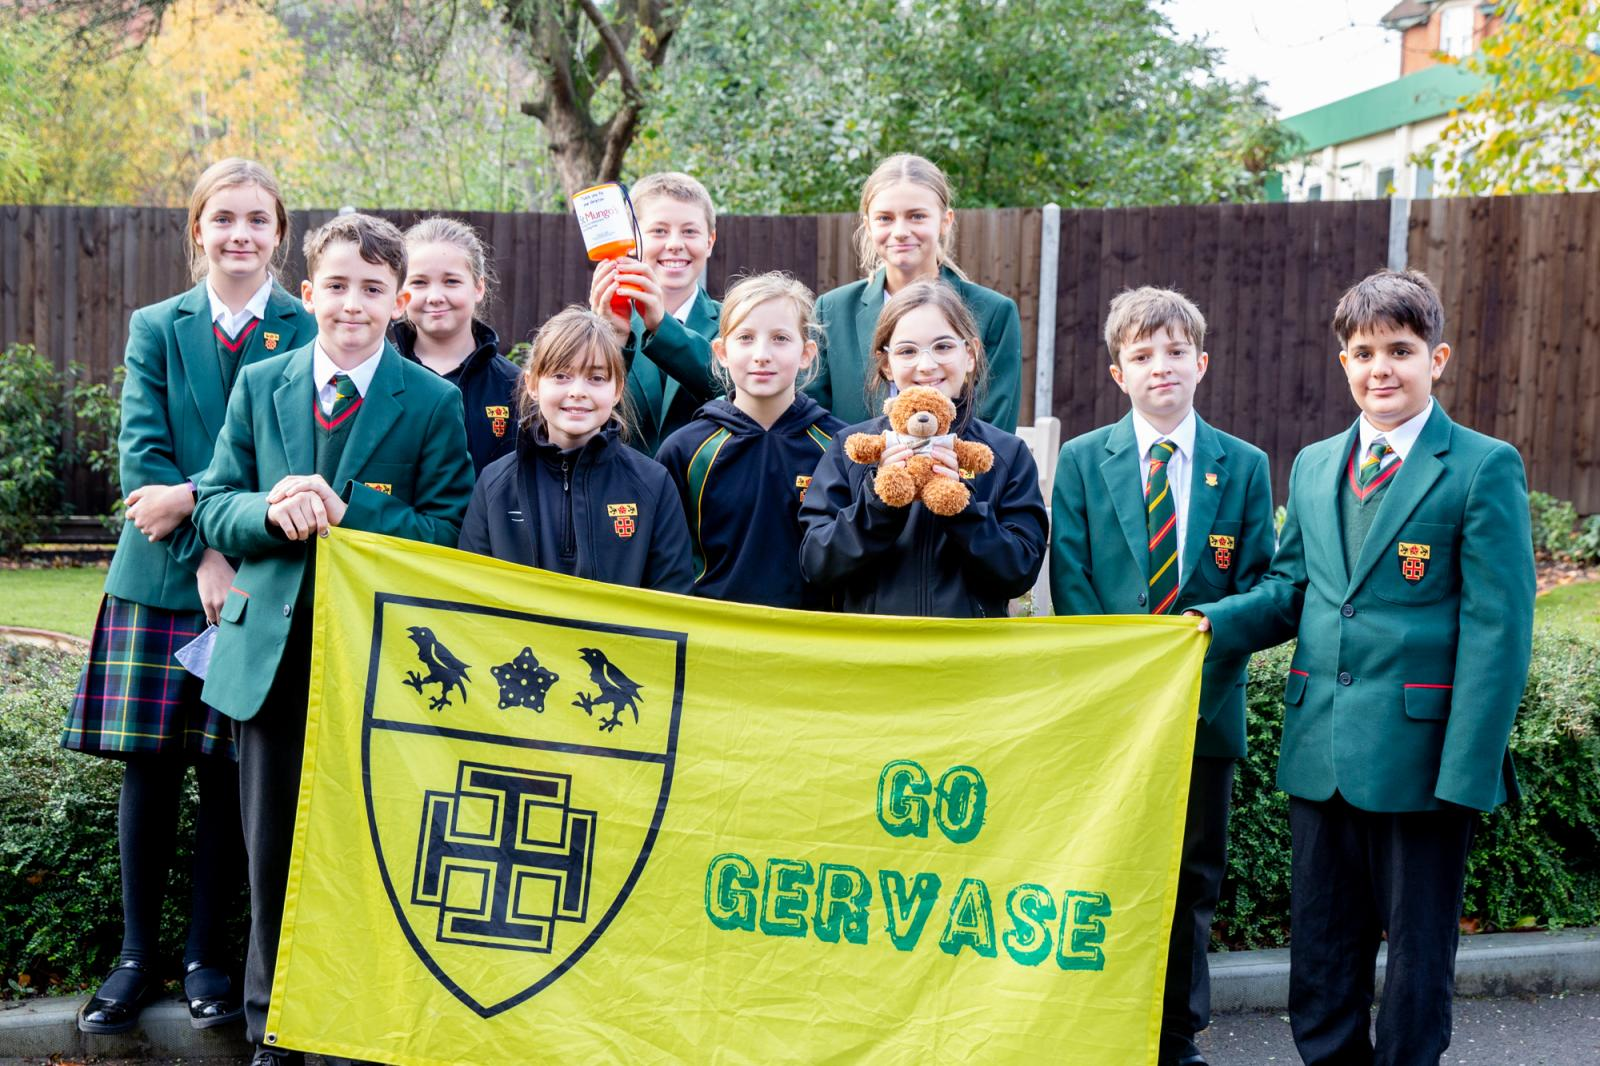 St Benedict's students raise funds to help tackle homelessness this winter - Diocese of Westminster